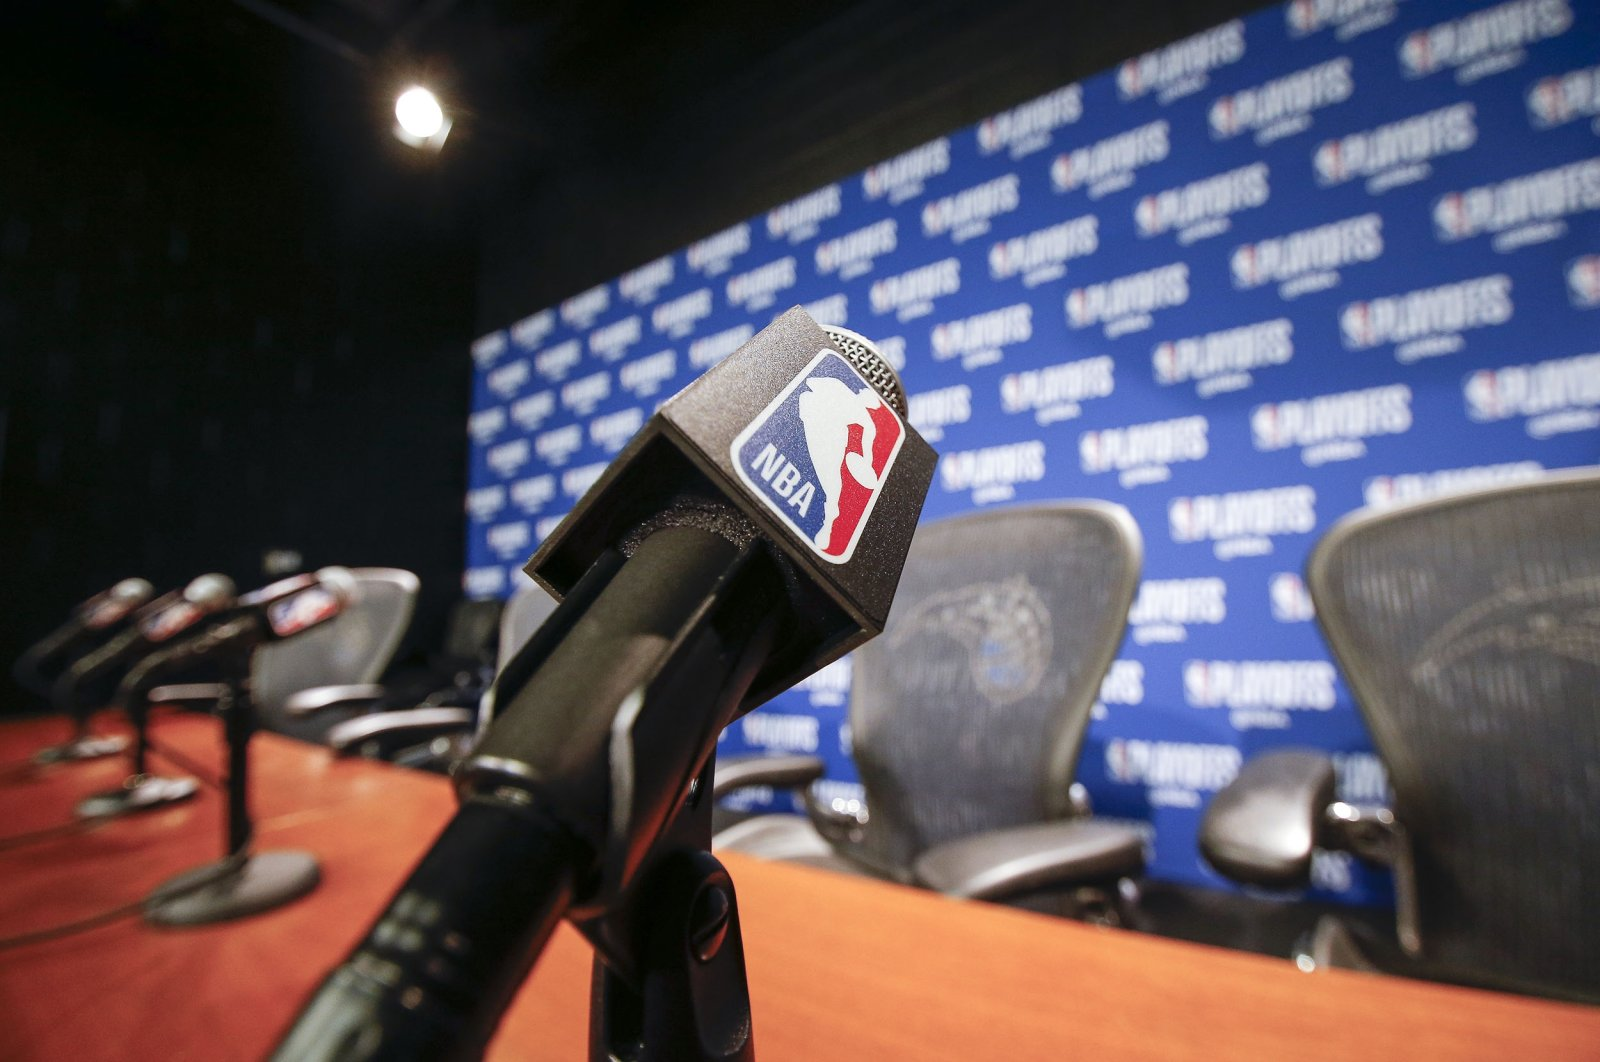 A general view of a microphone with the NBA logo at the post press conference after an NBA game at the Amway Center in Orlando, Florida, U.S., April 19, 2019. (Getty Images)